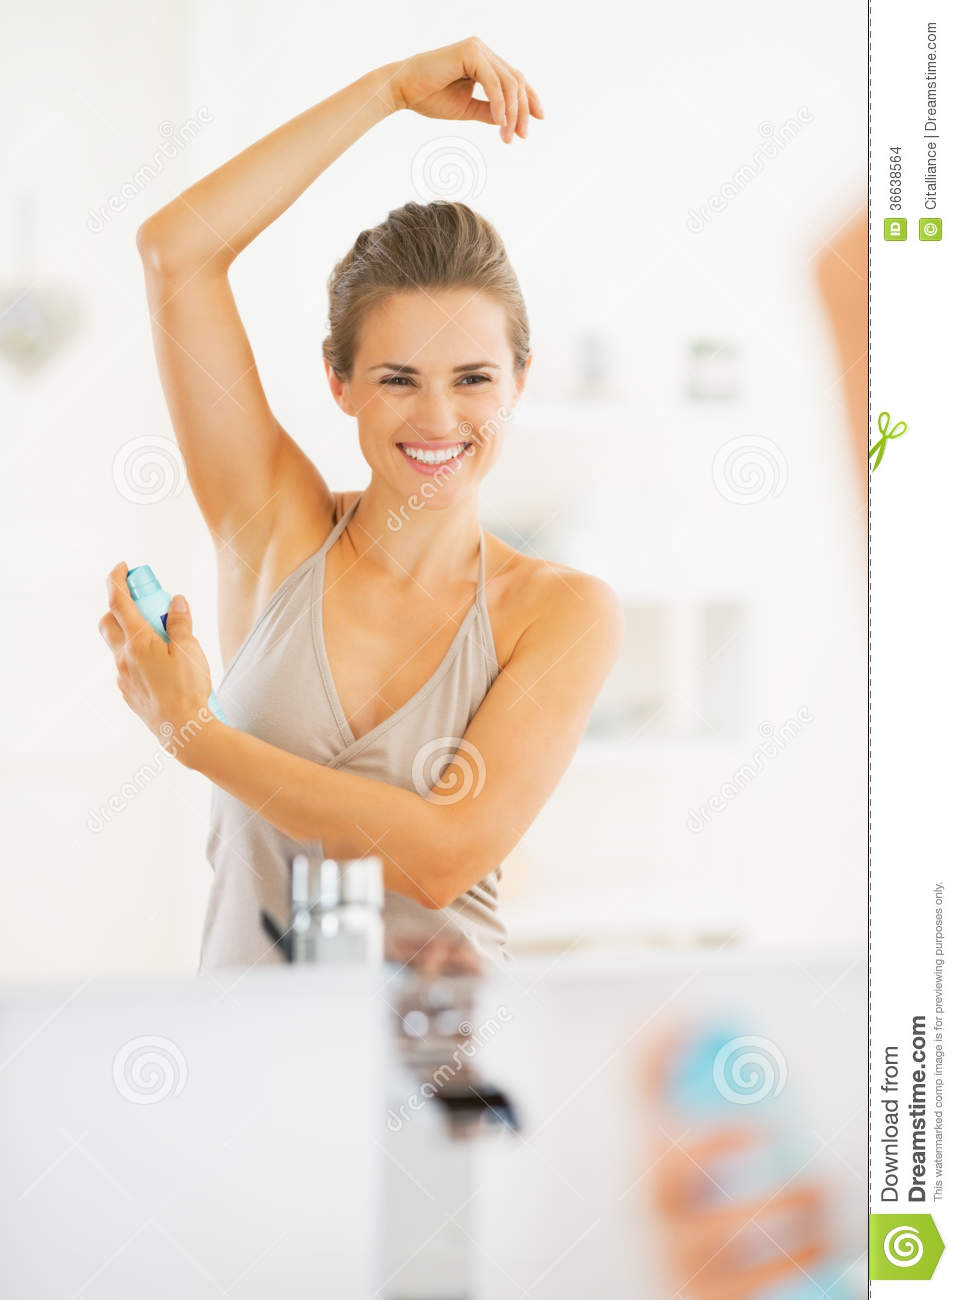 how to make your underarm white